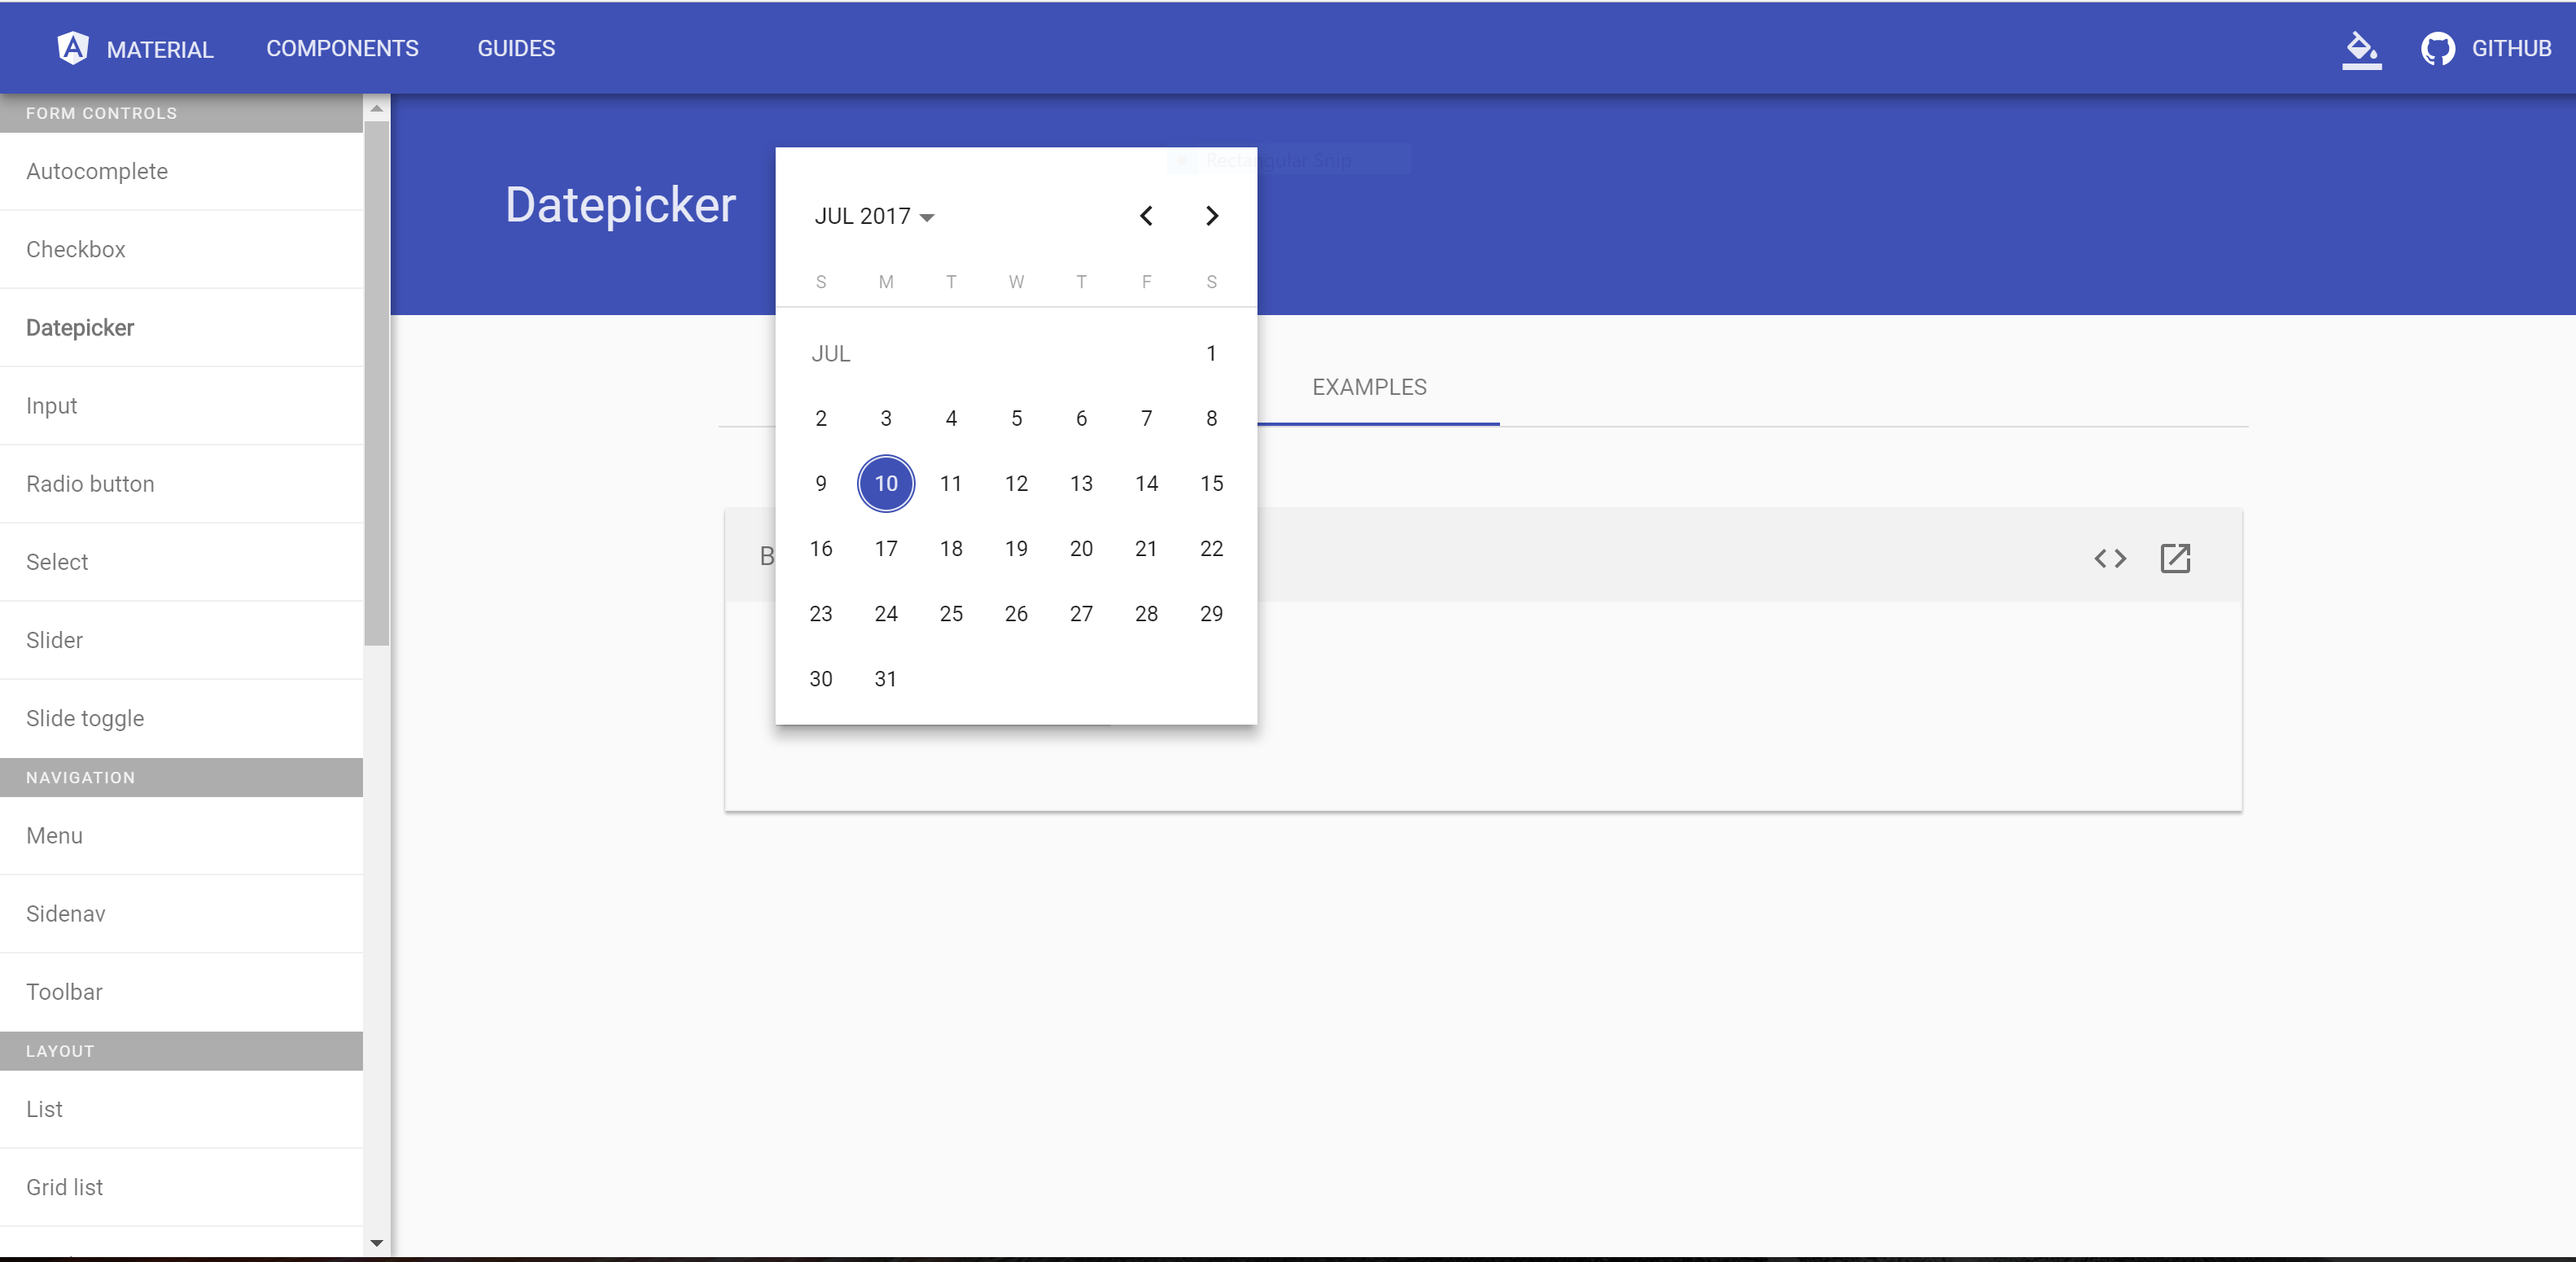 datepicker doesn't open to correct month for non US date